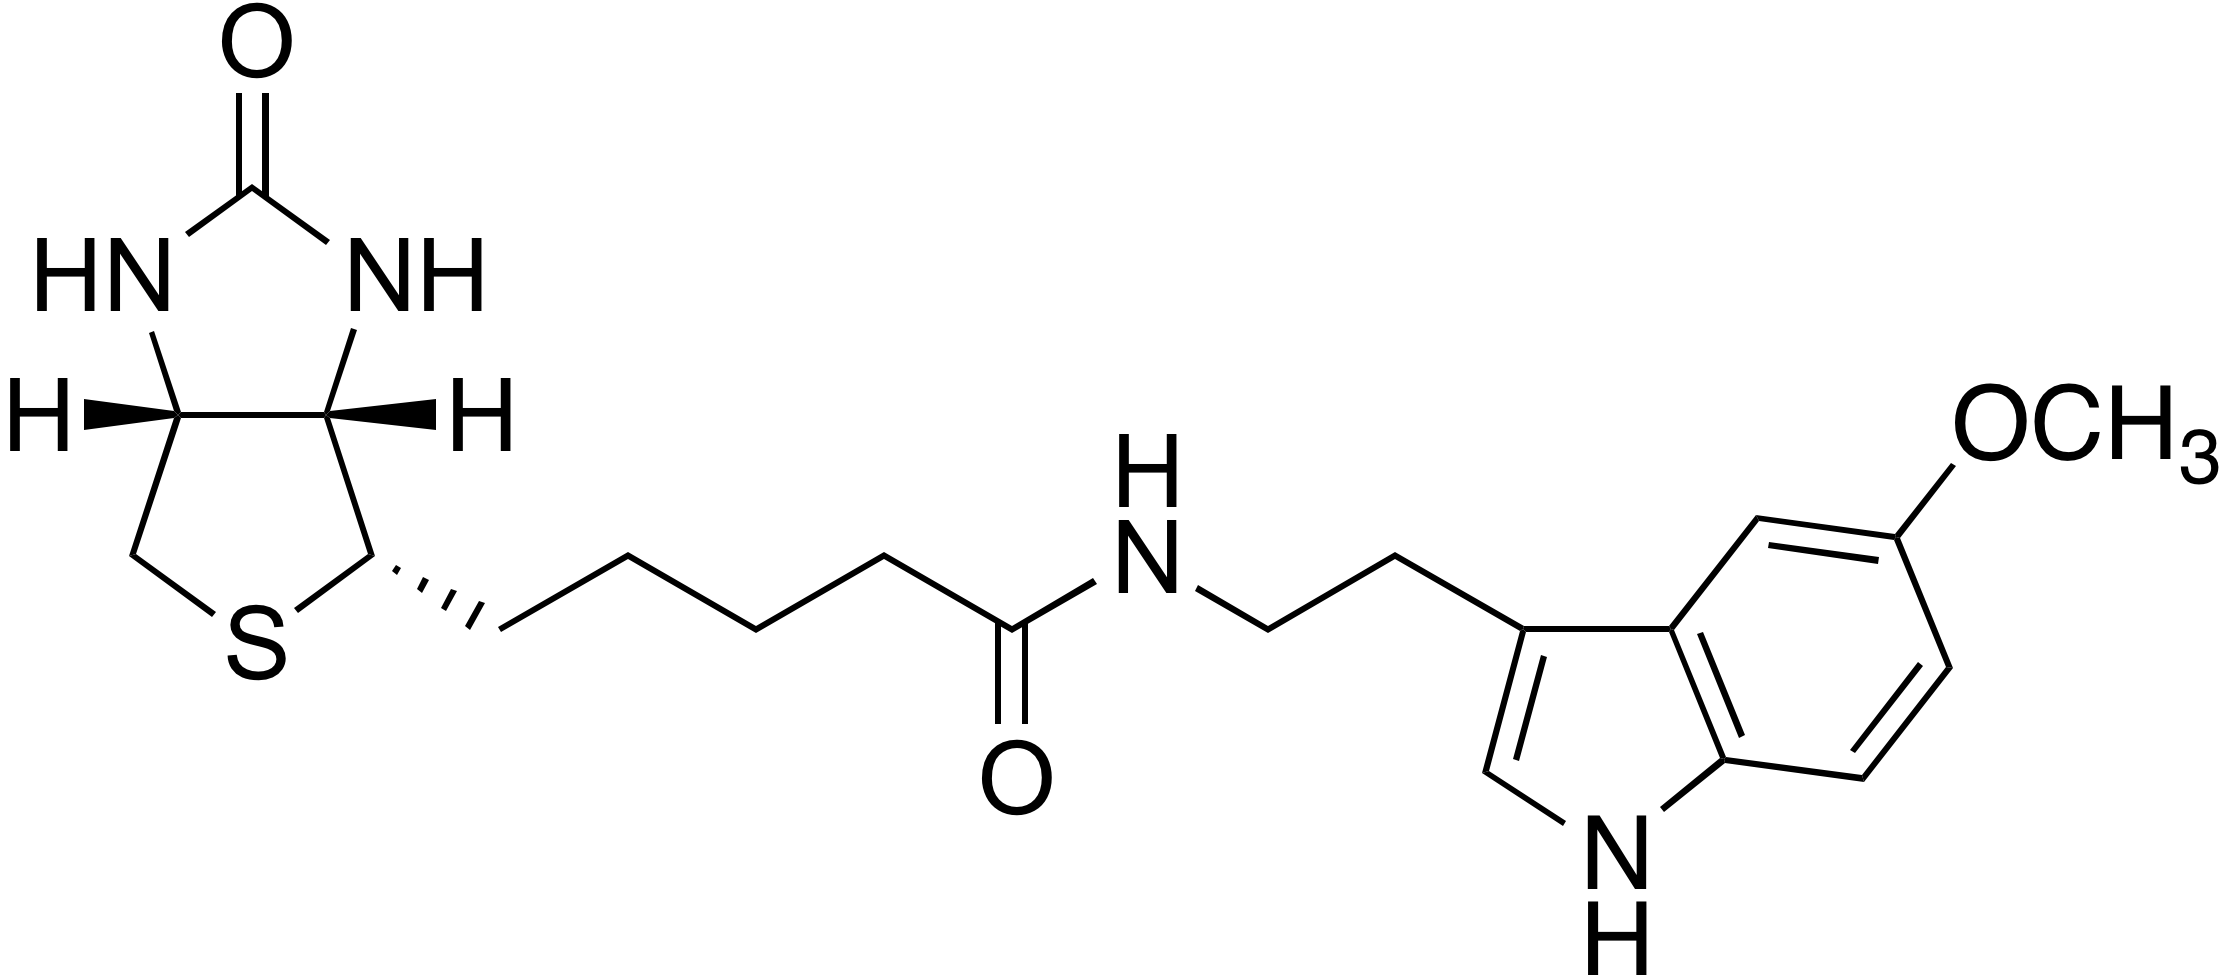 N-Biotinyl-5-methoxytryptamine